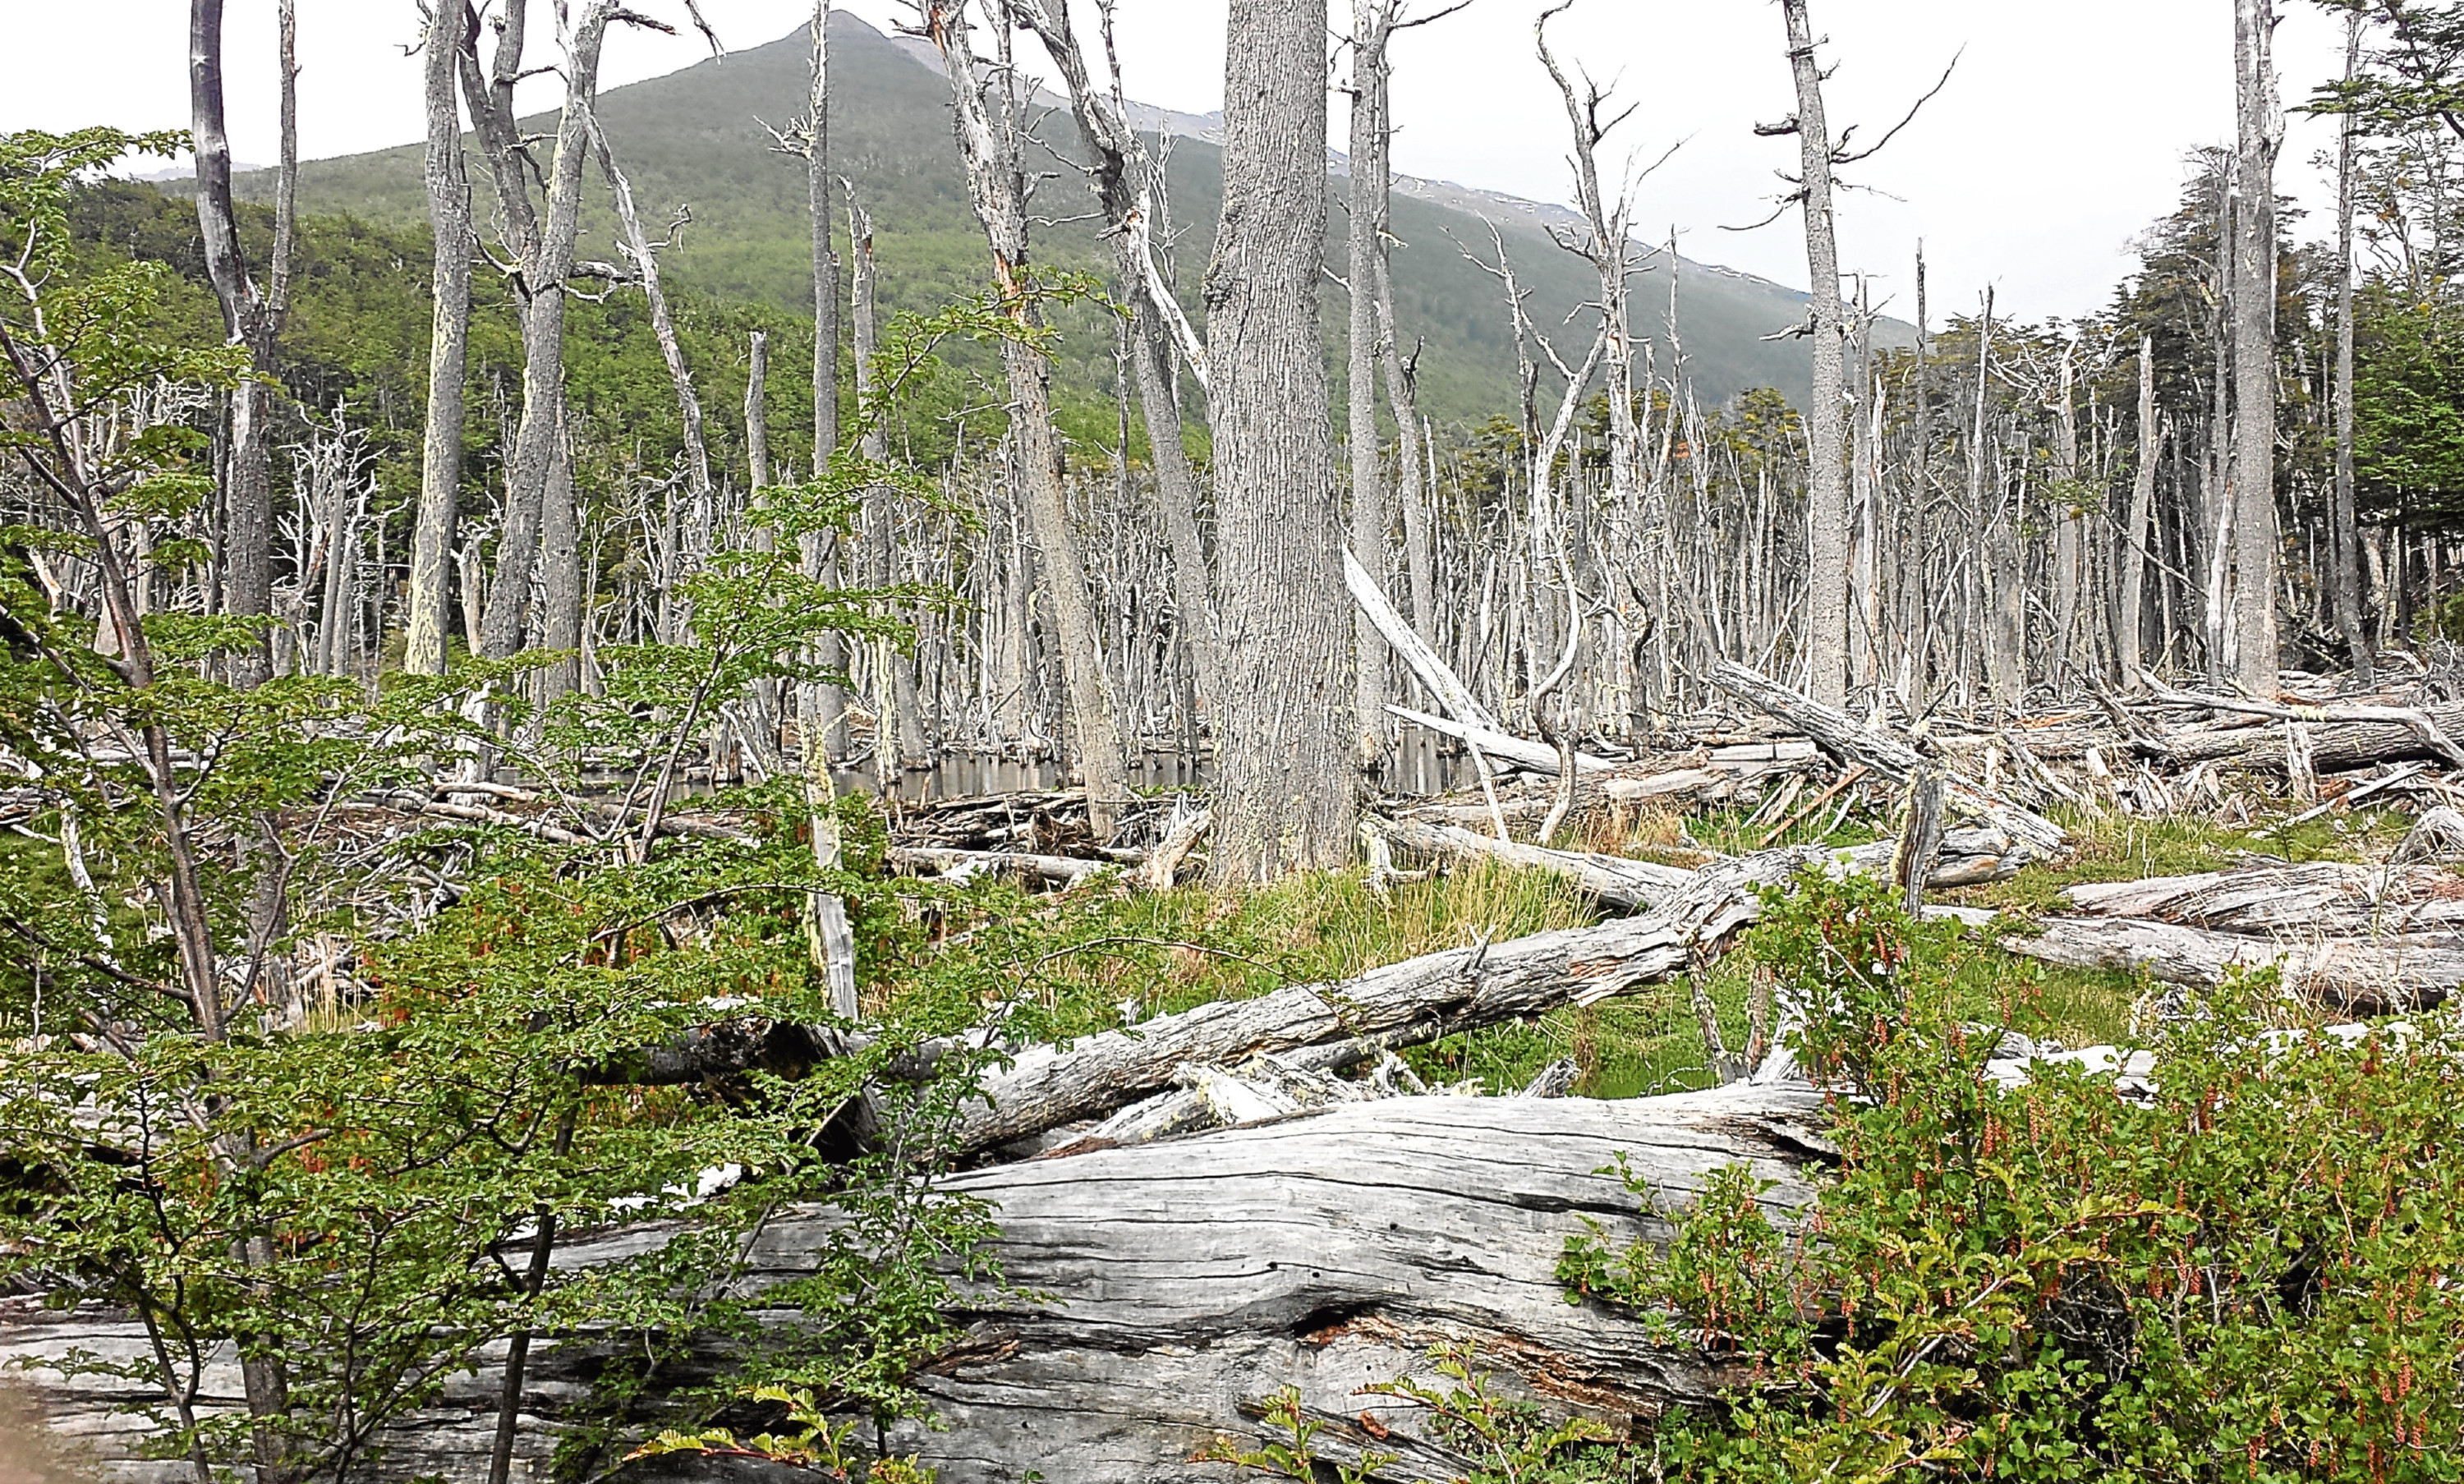 Beaver damage to trees in Argentina 2016.